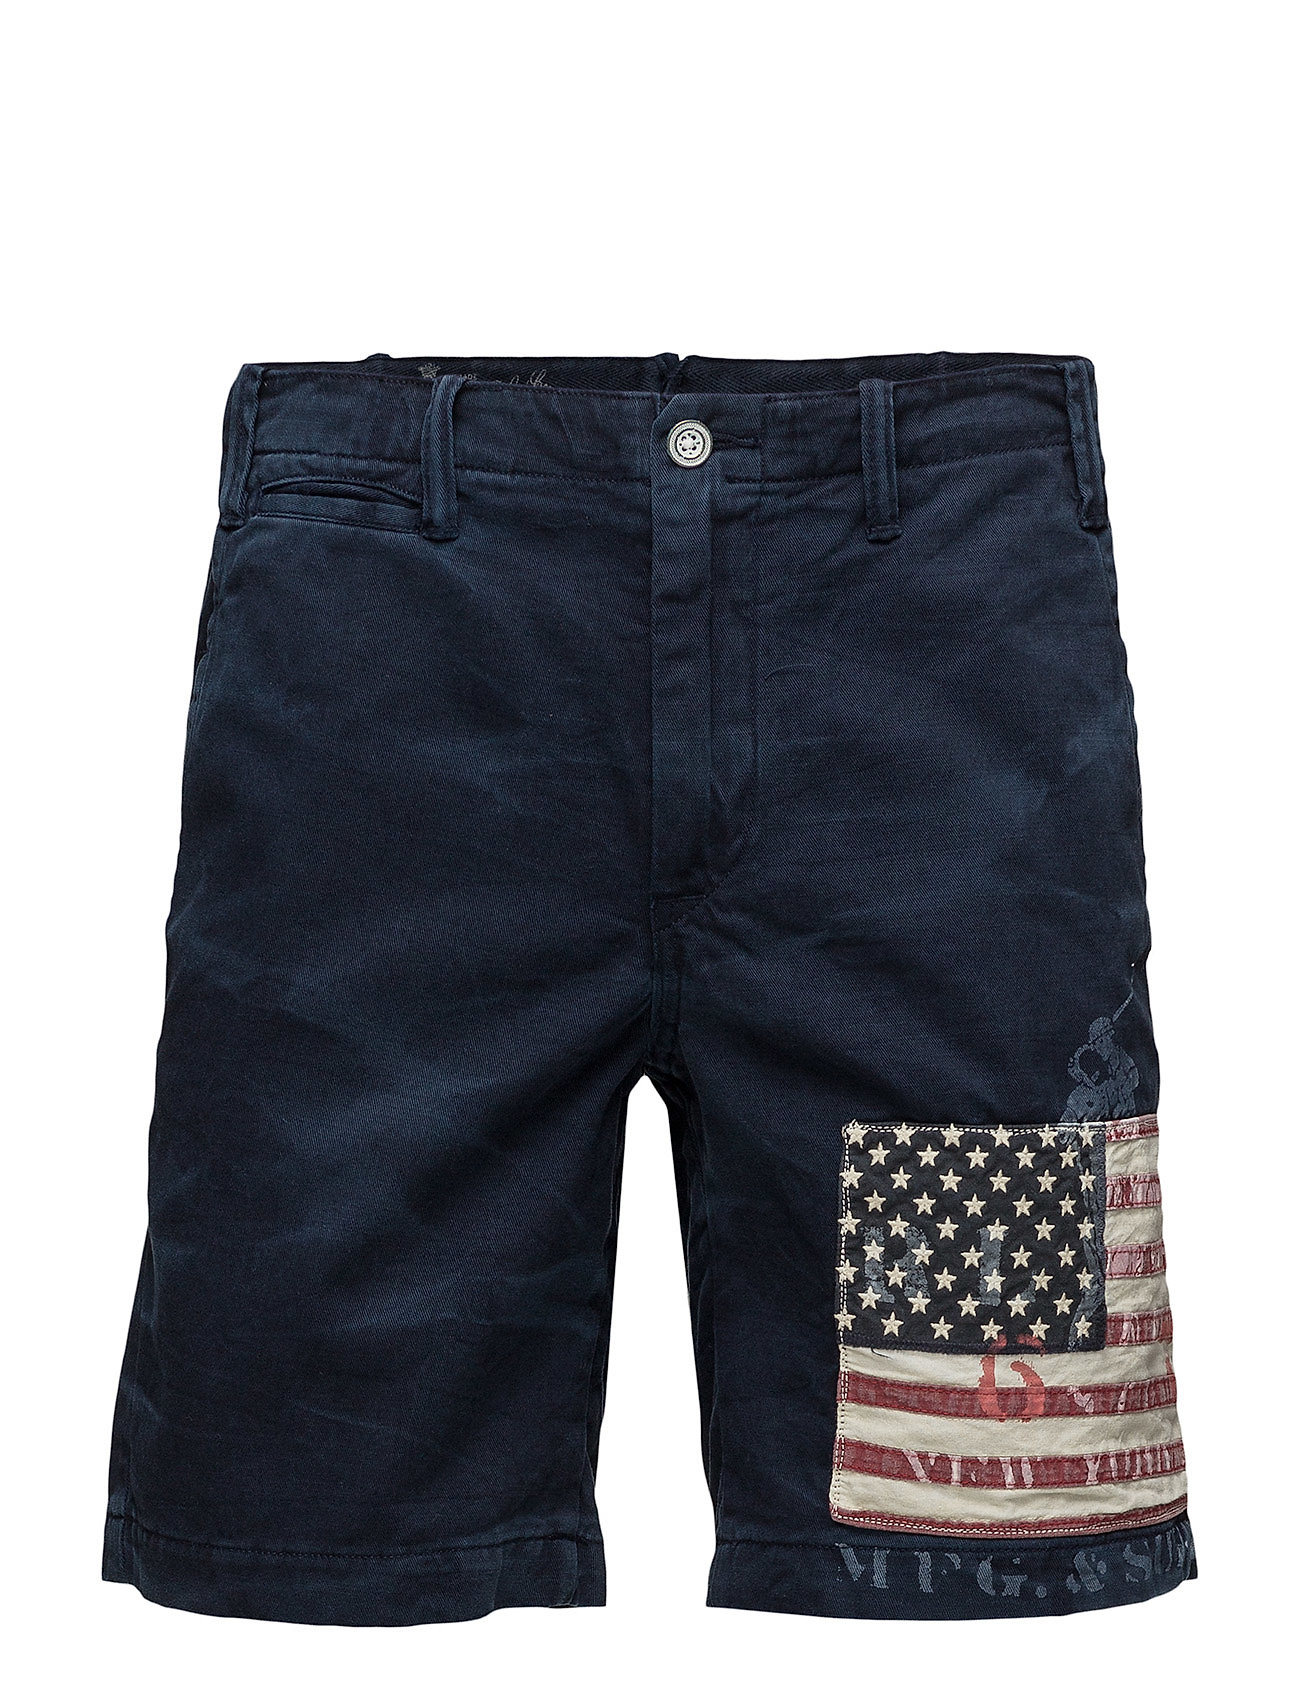 Polo Ralph Lauren STRAIGHT FIT MARITIME SHORT - AVIATOR NAVY W/ F